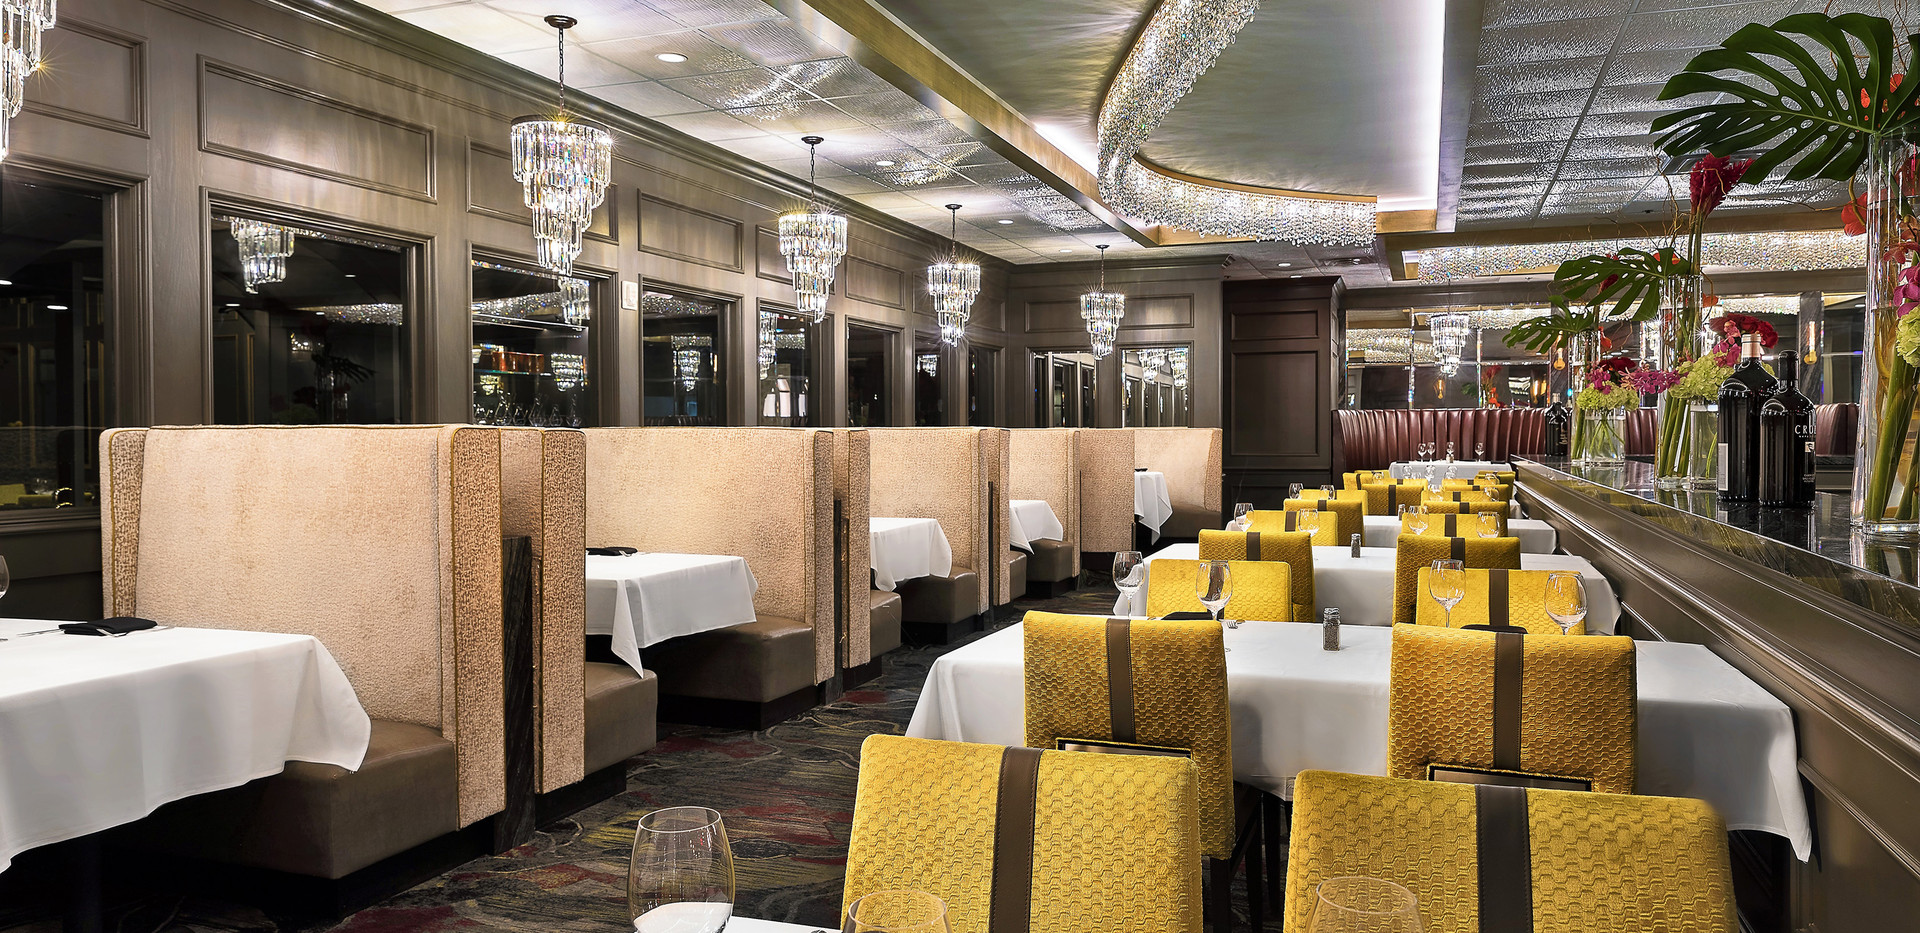 Del Frisco's Double Eagle Steakhouse Las Vegas